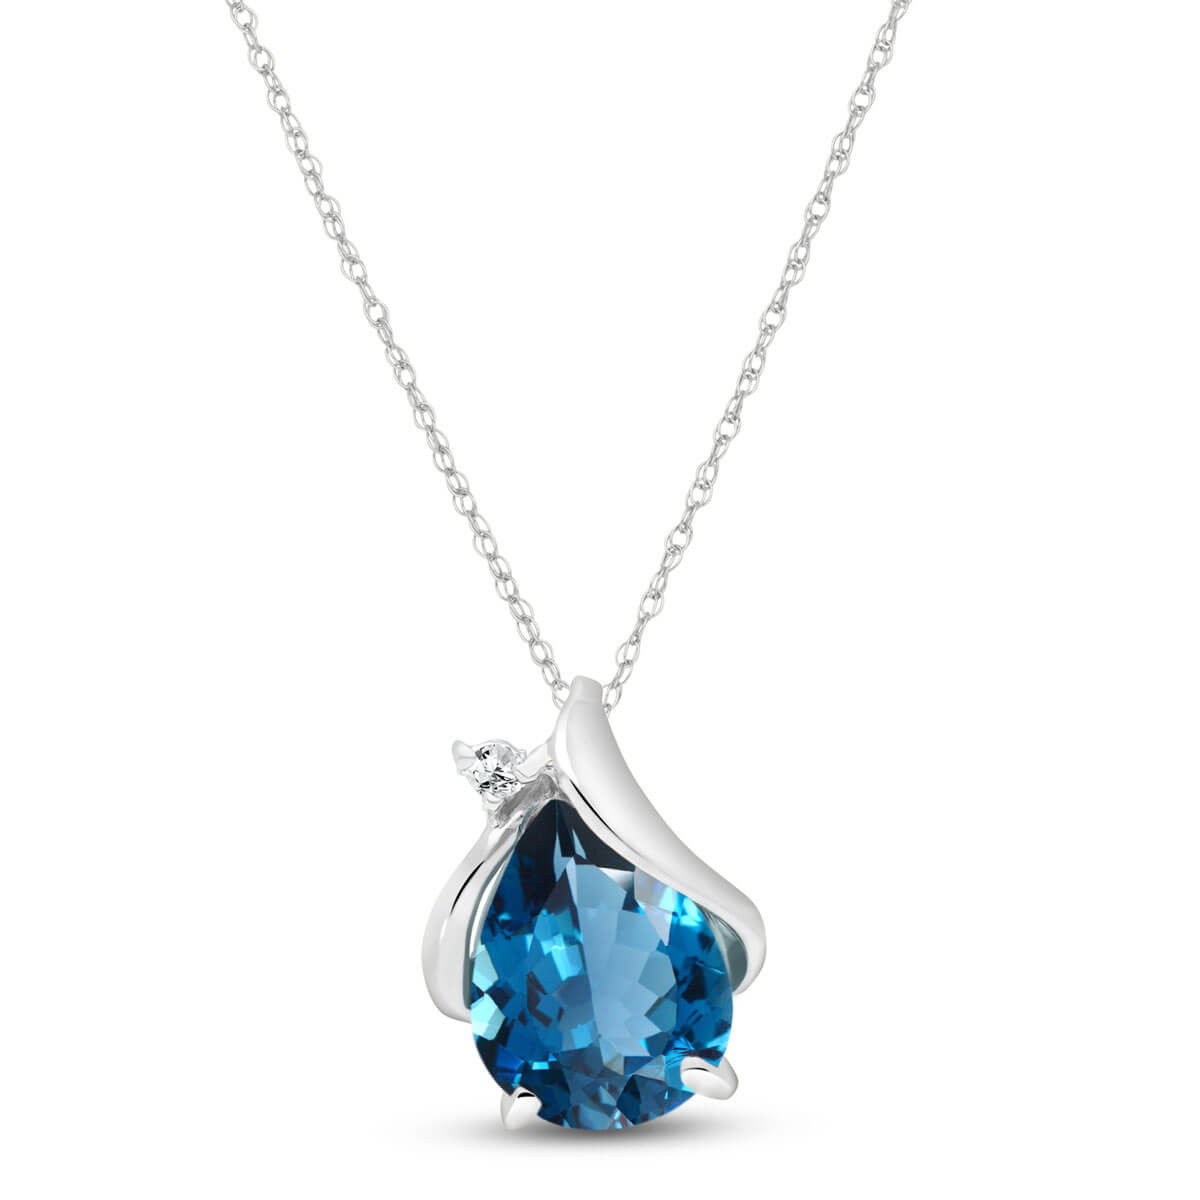 Pear Cut Blue Topaz Pendant Necklace 2.53 ctw in 9ct White Gold